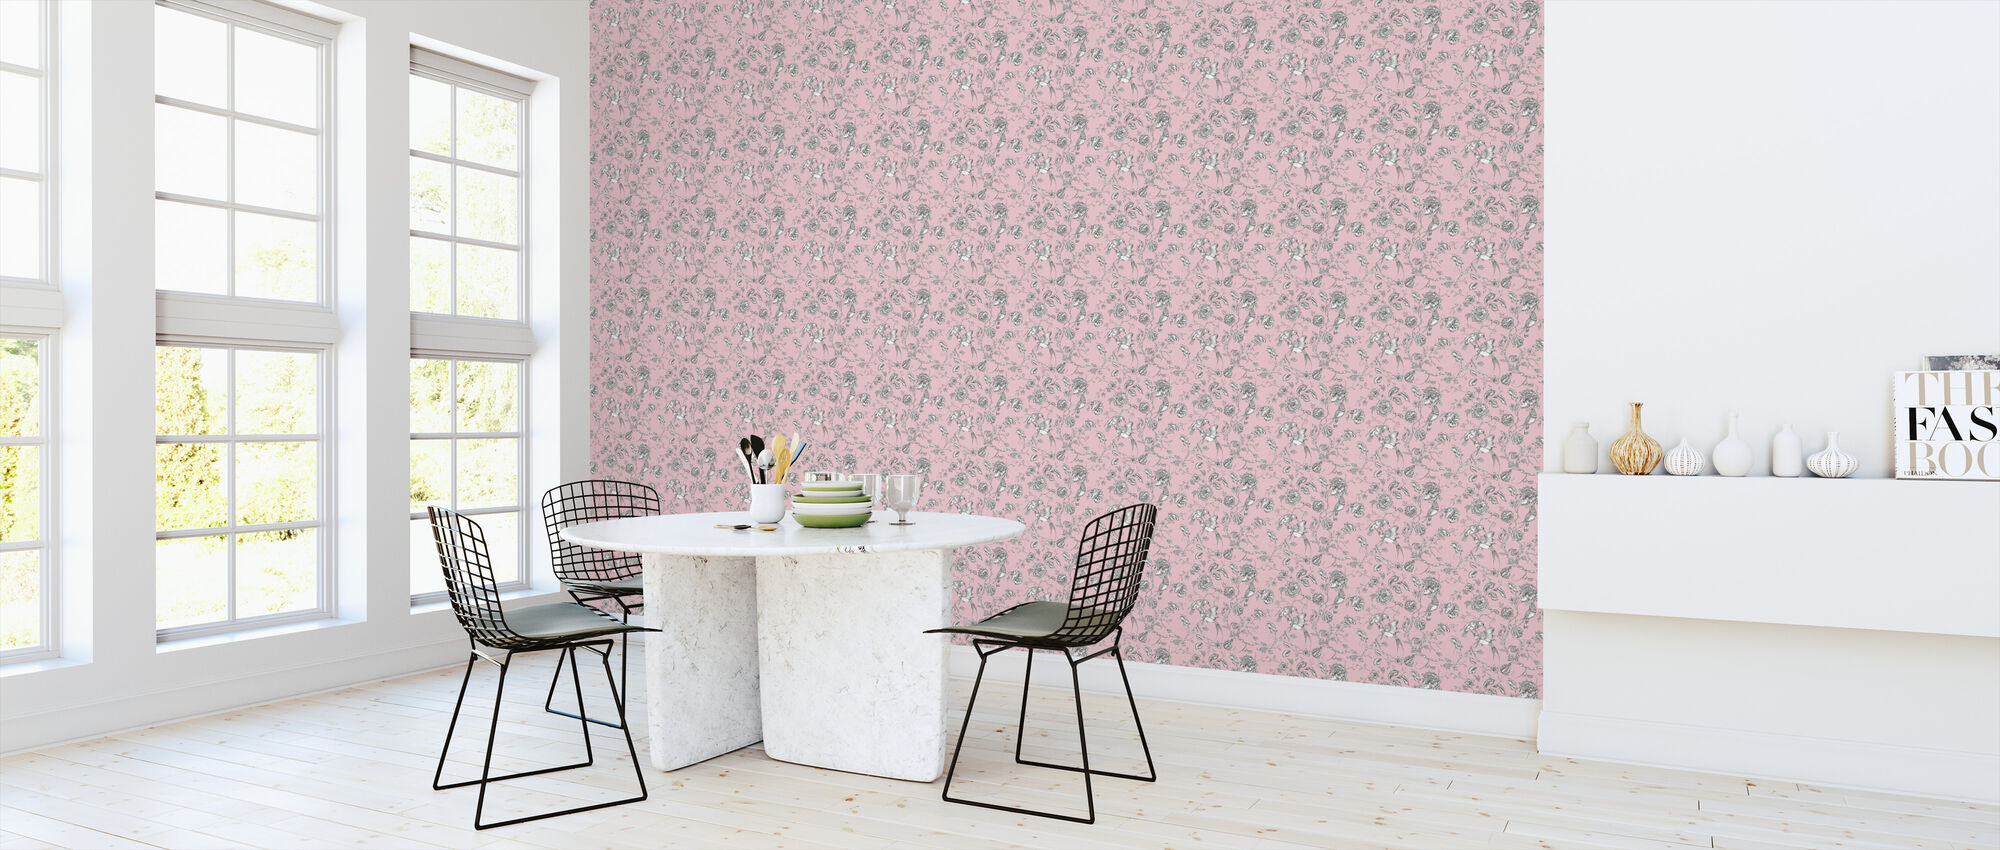 Hummingbird Pink - Wallpaper - Kitchen